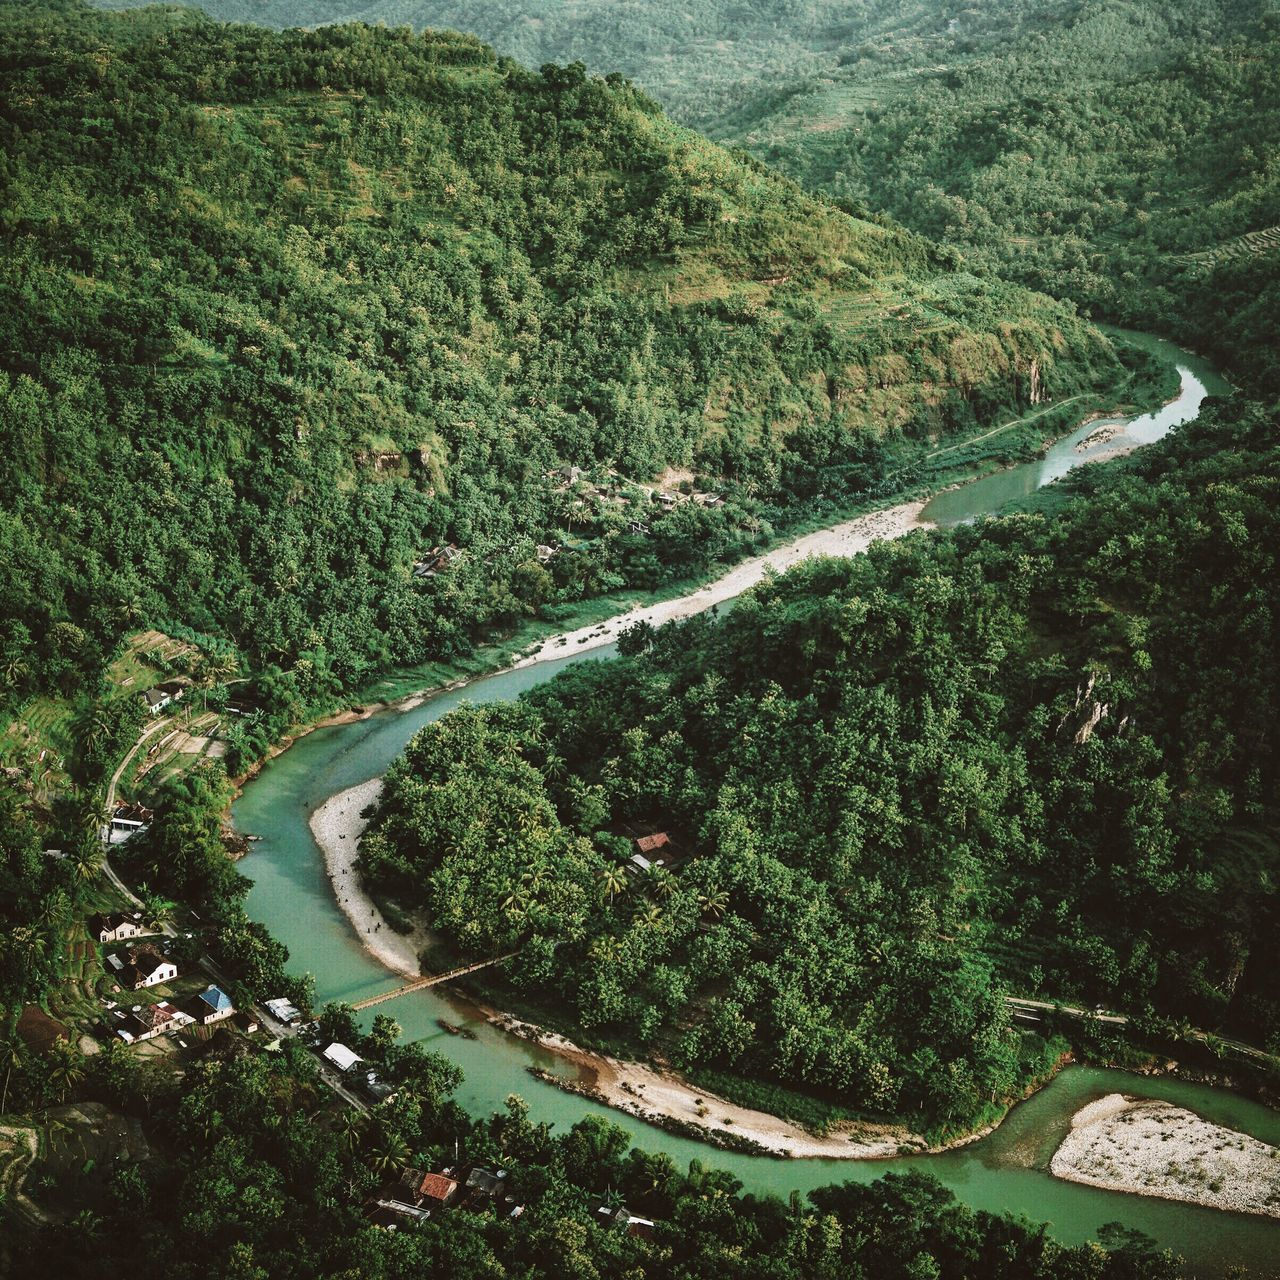 Jogja's landscapes 🏞 Landscape Landscape_Collection Landscape_photography Landscapes With WhiteWall The Great Outdoors With Adobe Forest Tropical River Green Curves Village Nature View View From Above INDONESIA Java Traveling The Great Outdoors - 2016 EyeEm Awards Color Palette A Bird's Eye View